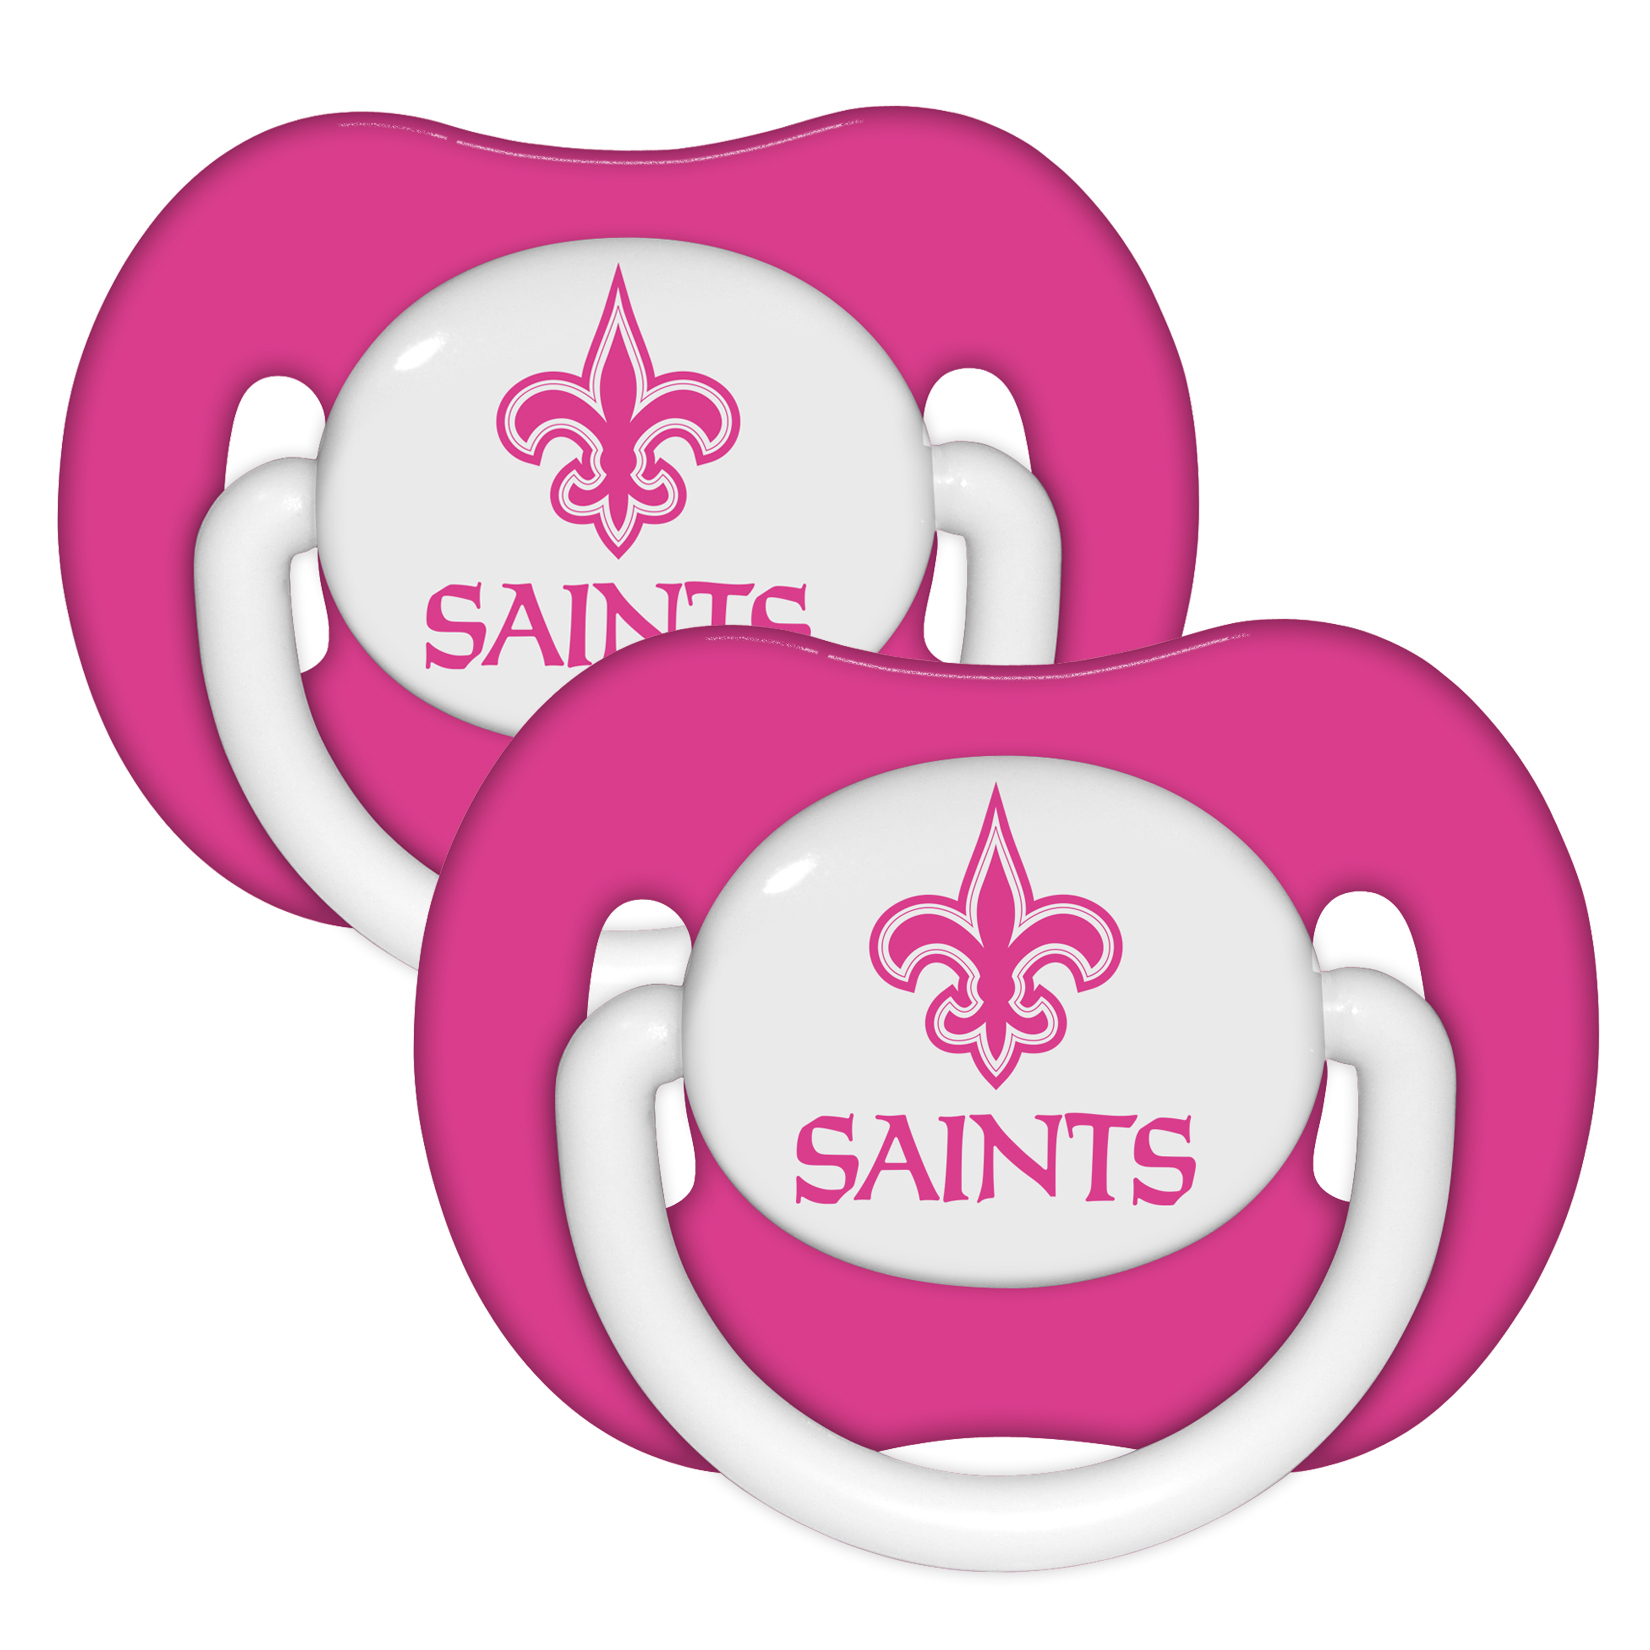 NFL Licensed New Orleans Saints Logo Baby Pacifier in Teams Colors 2 pack